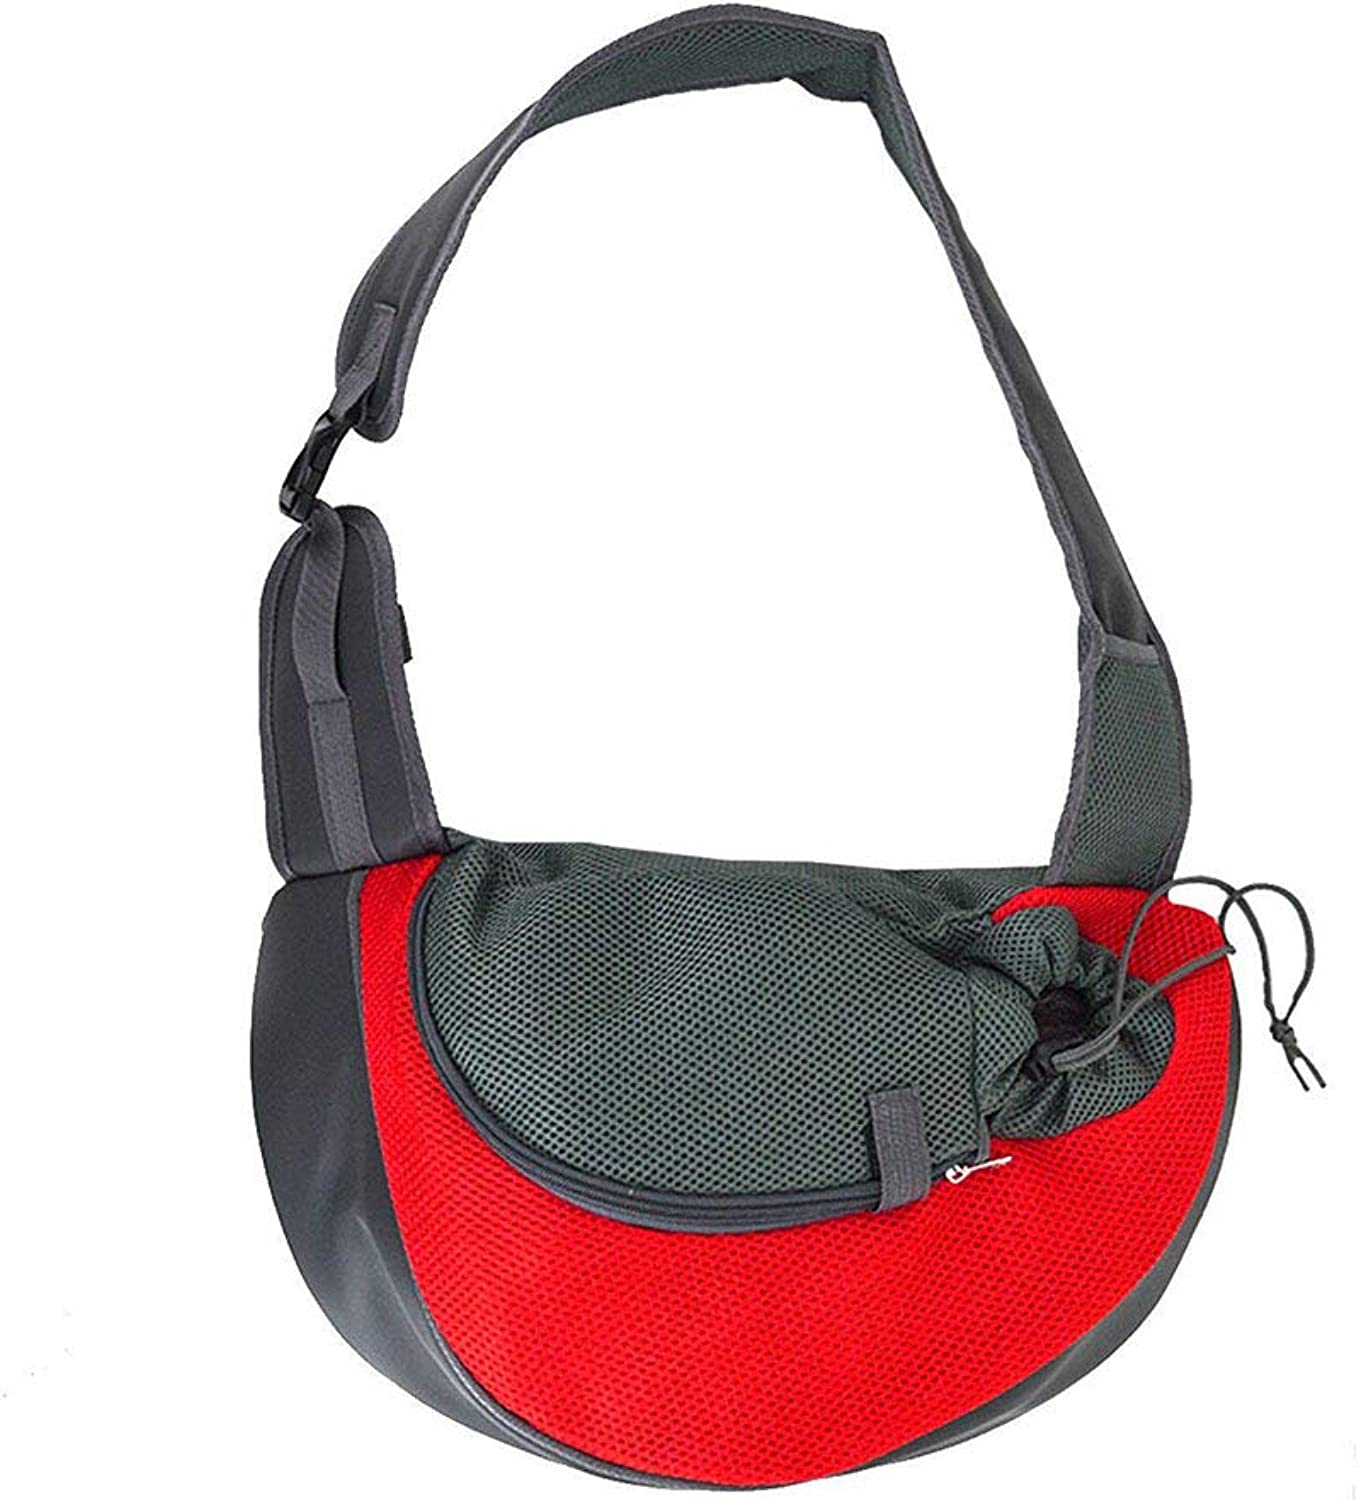 Pet Sling Dog Cat Sling Carrier for Cats Dogs Bunny, Extra Safety Outdoor Travel Oxford Single Shoulder Bag Sling,Red,S